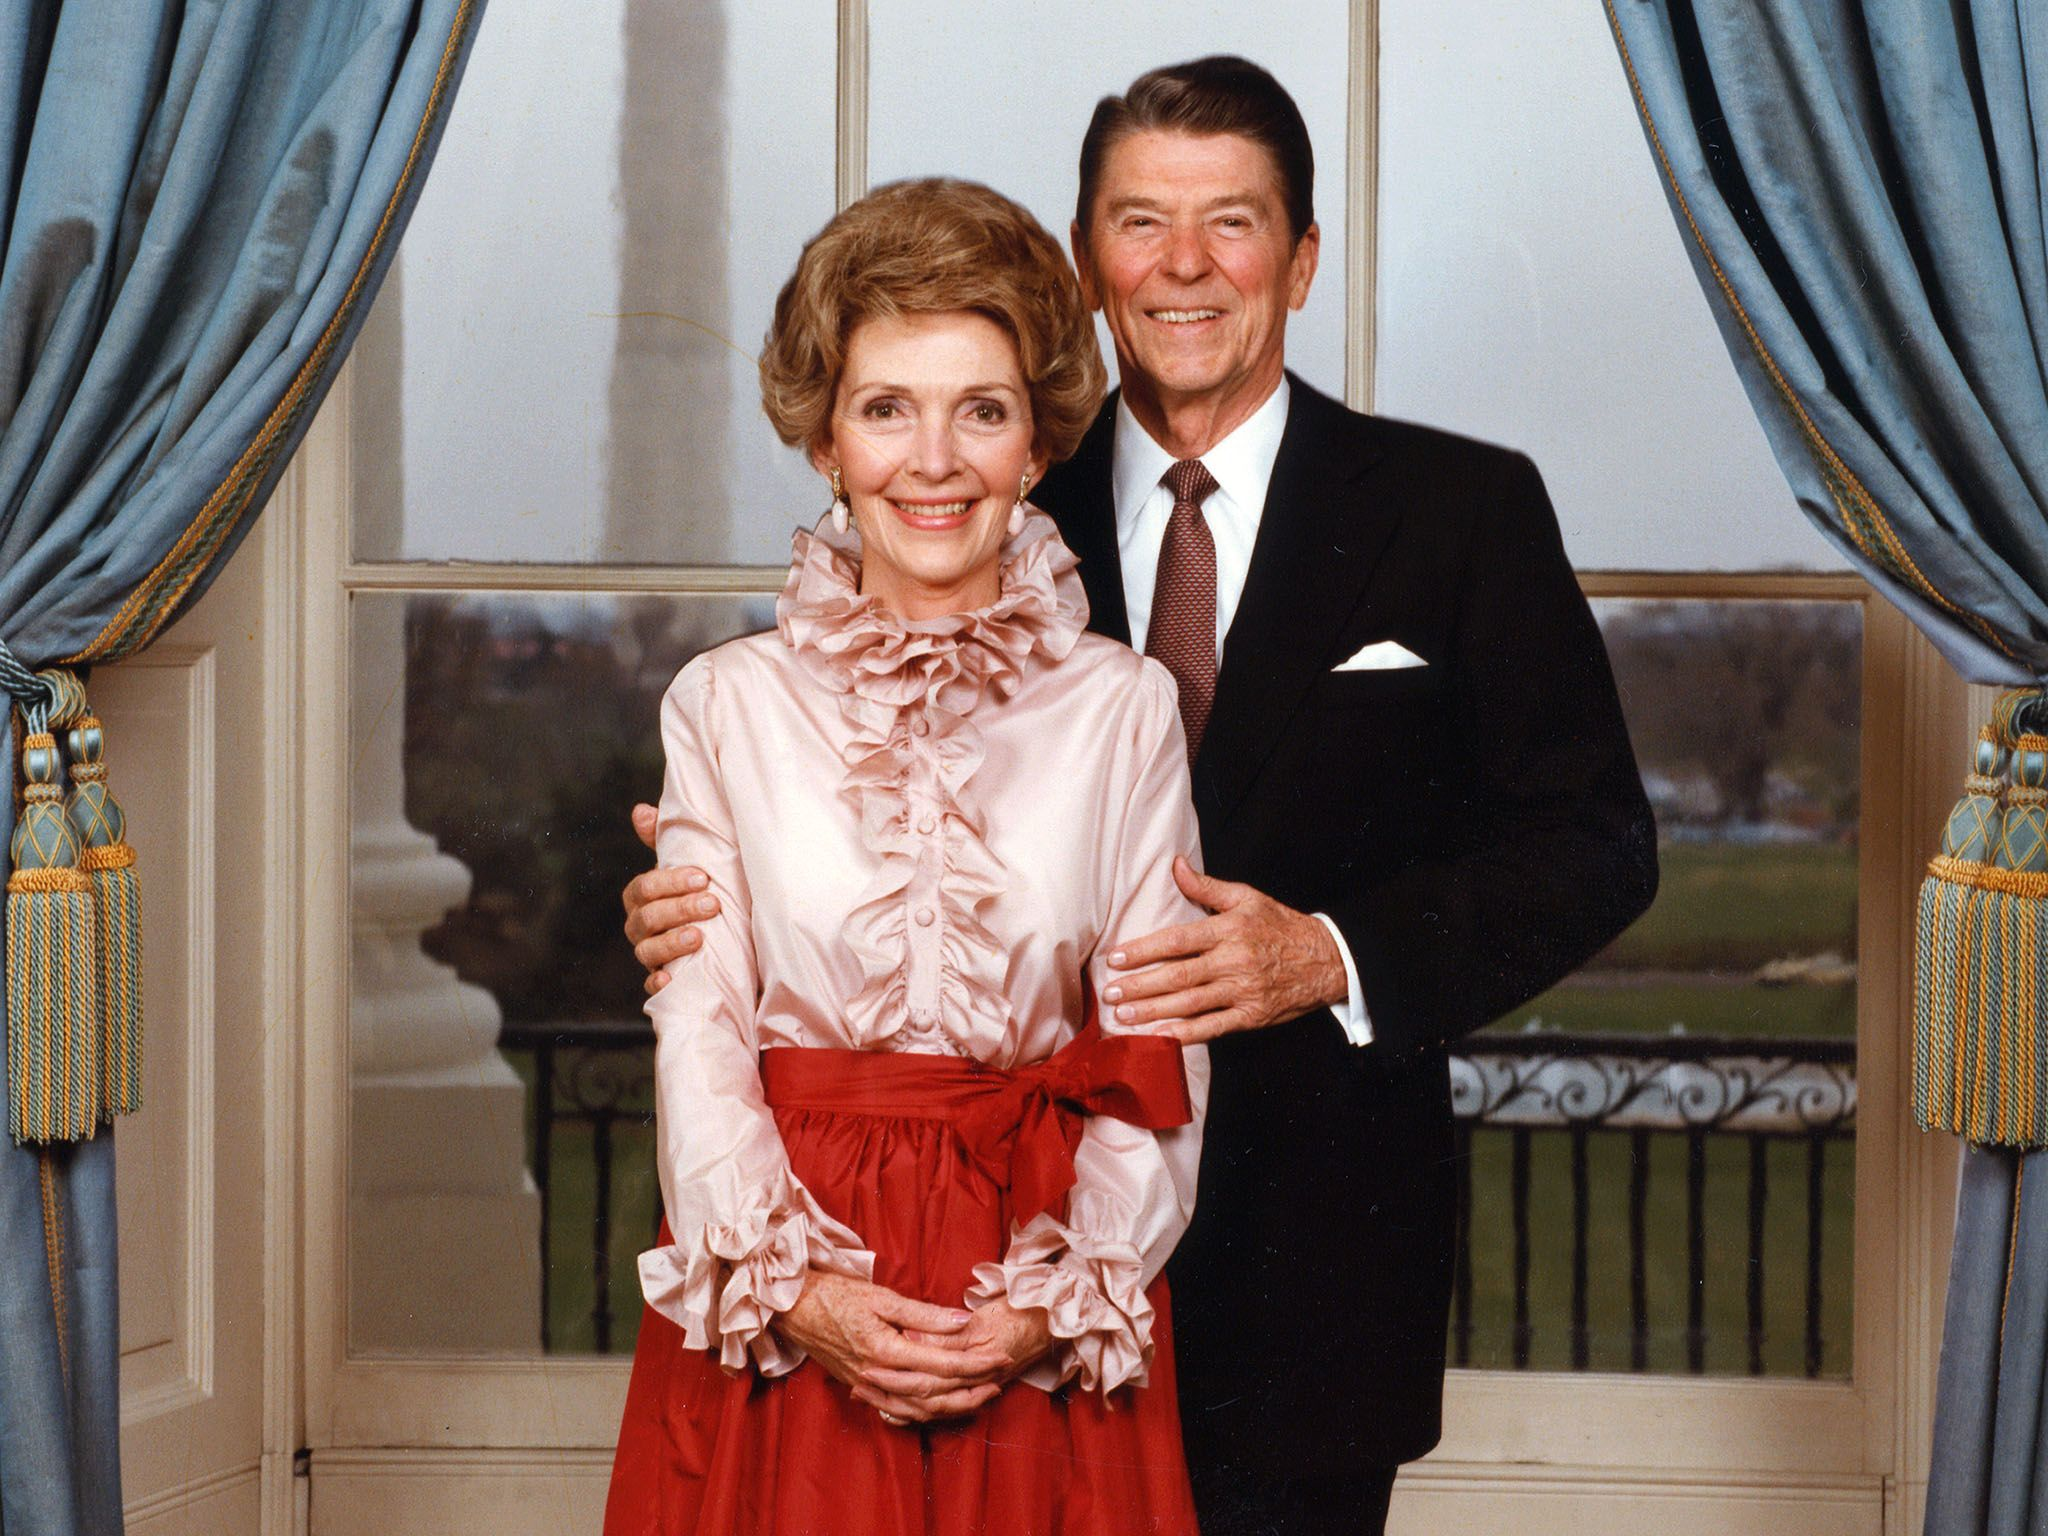 Portrait of President Ronald Reagan (1911 - 2004) with First Lady Nancy Reagan, taken in the... [Photo of the day - April 2016]